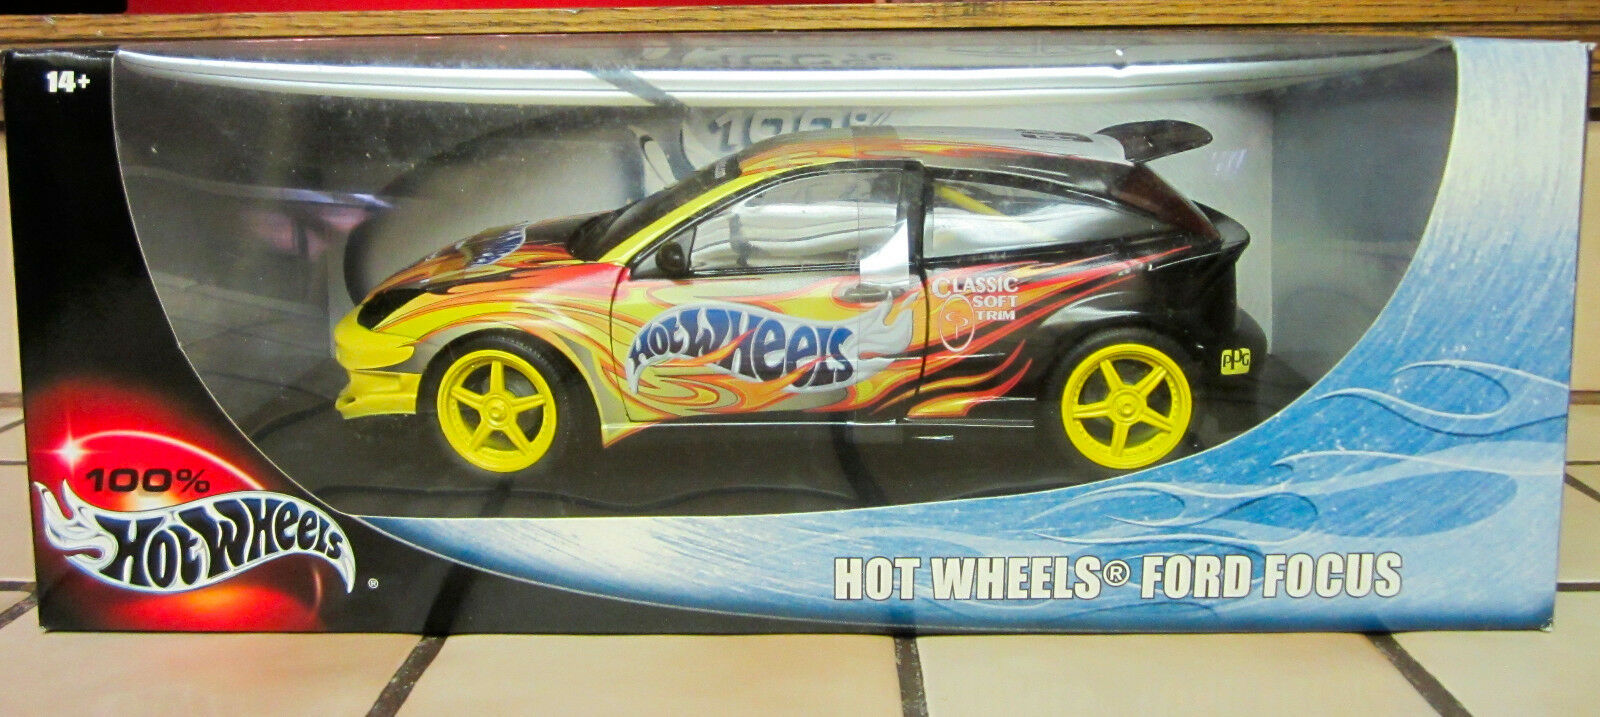 Hot Wheels Ford Focus Wings West w Flames Die-Cast Car 1 18 Scale NEW B5340